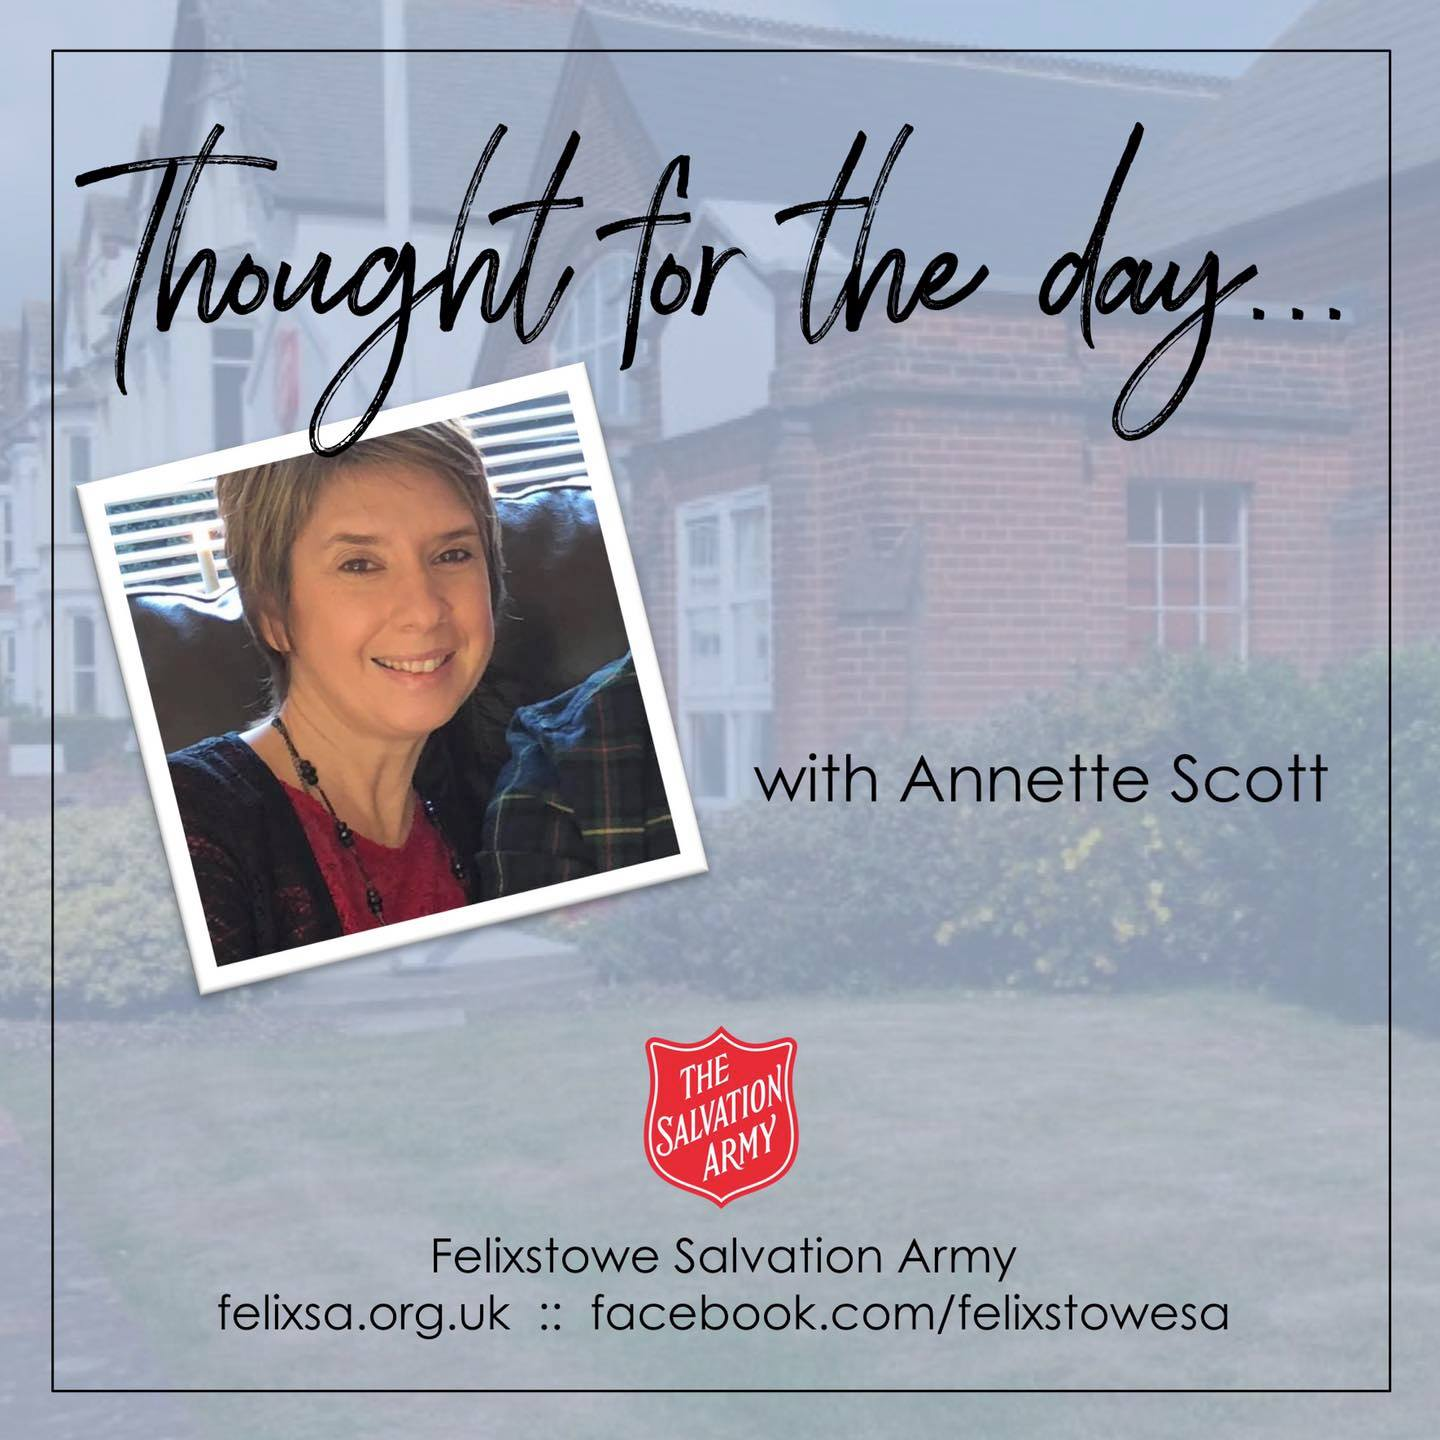 Thought for the Day with Annette Scott